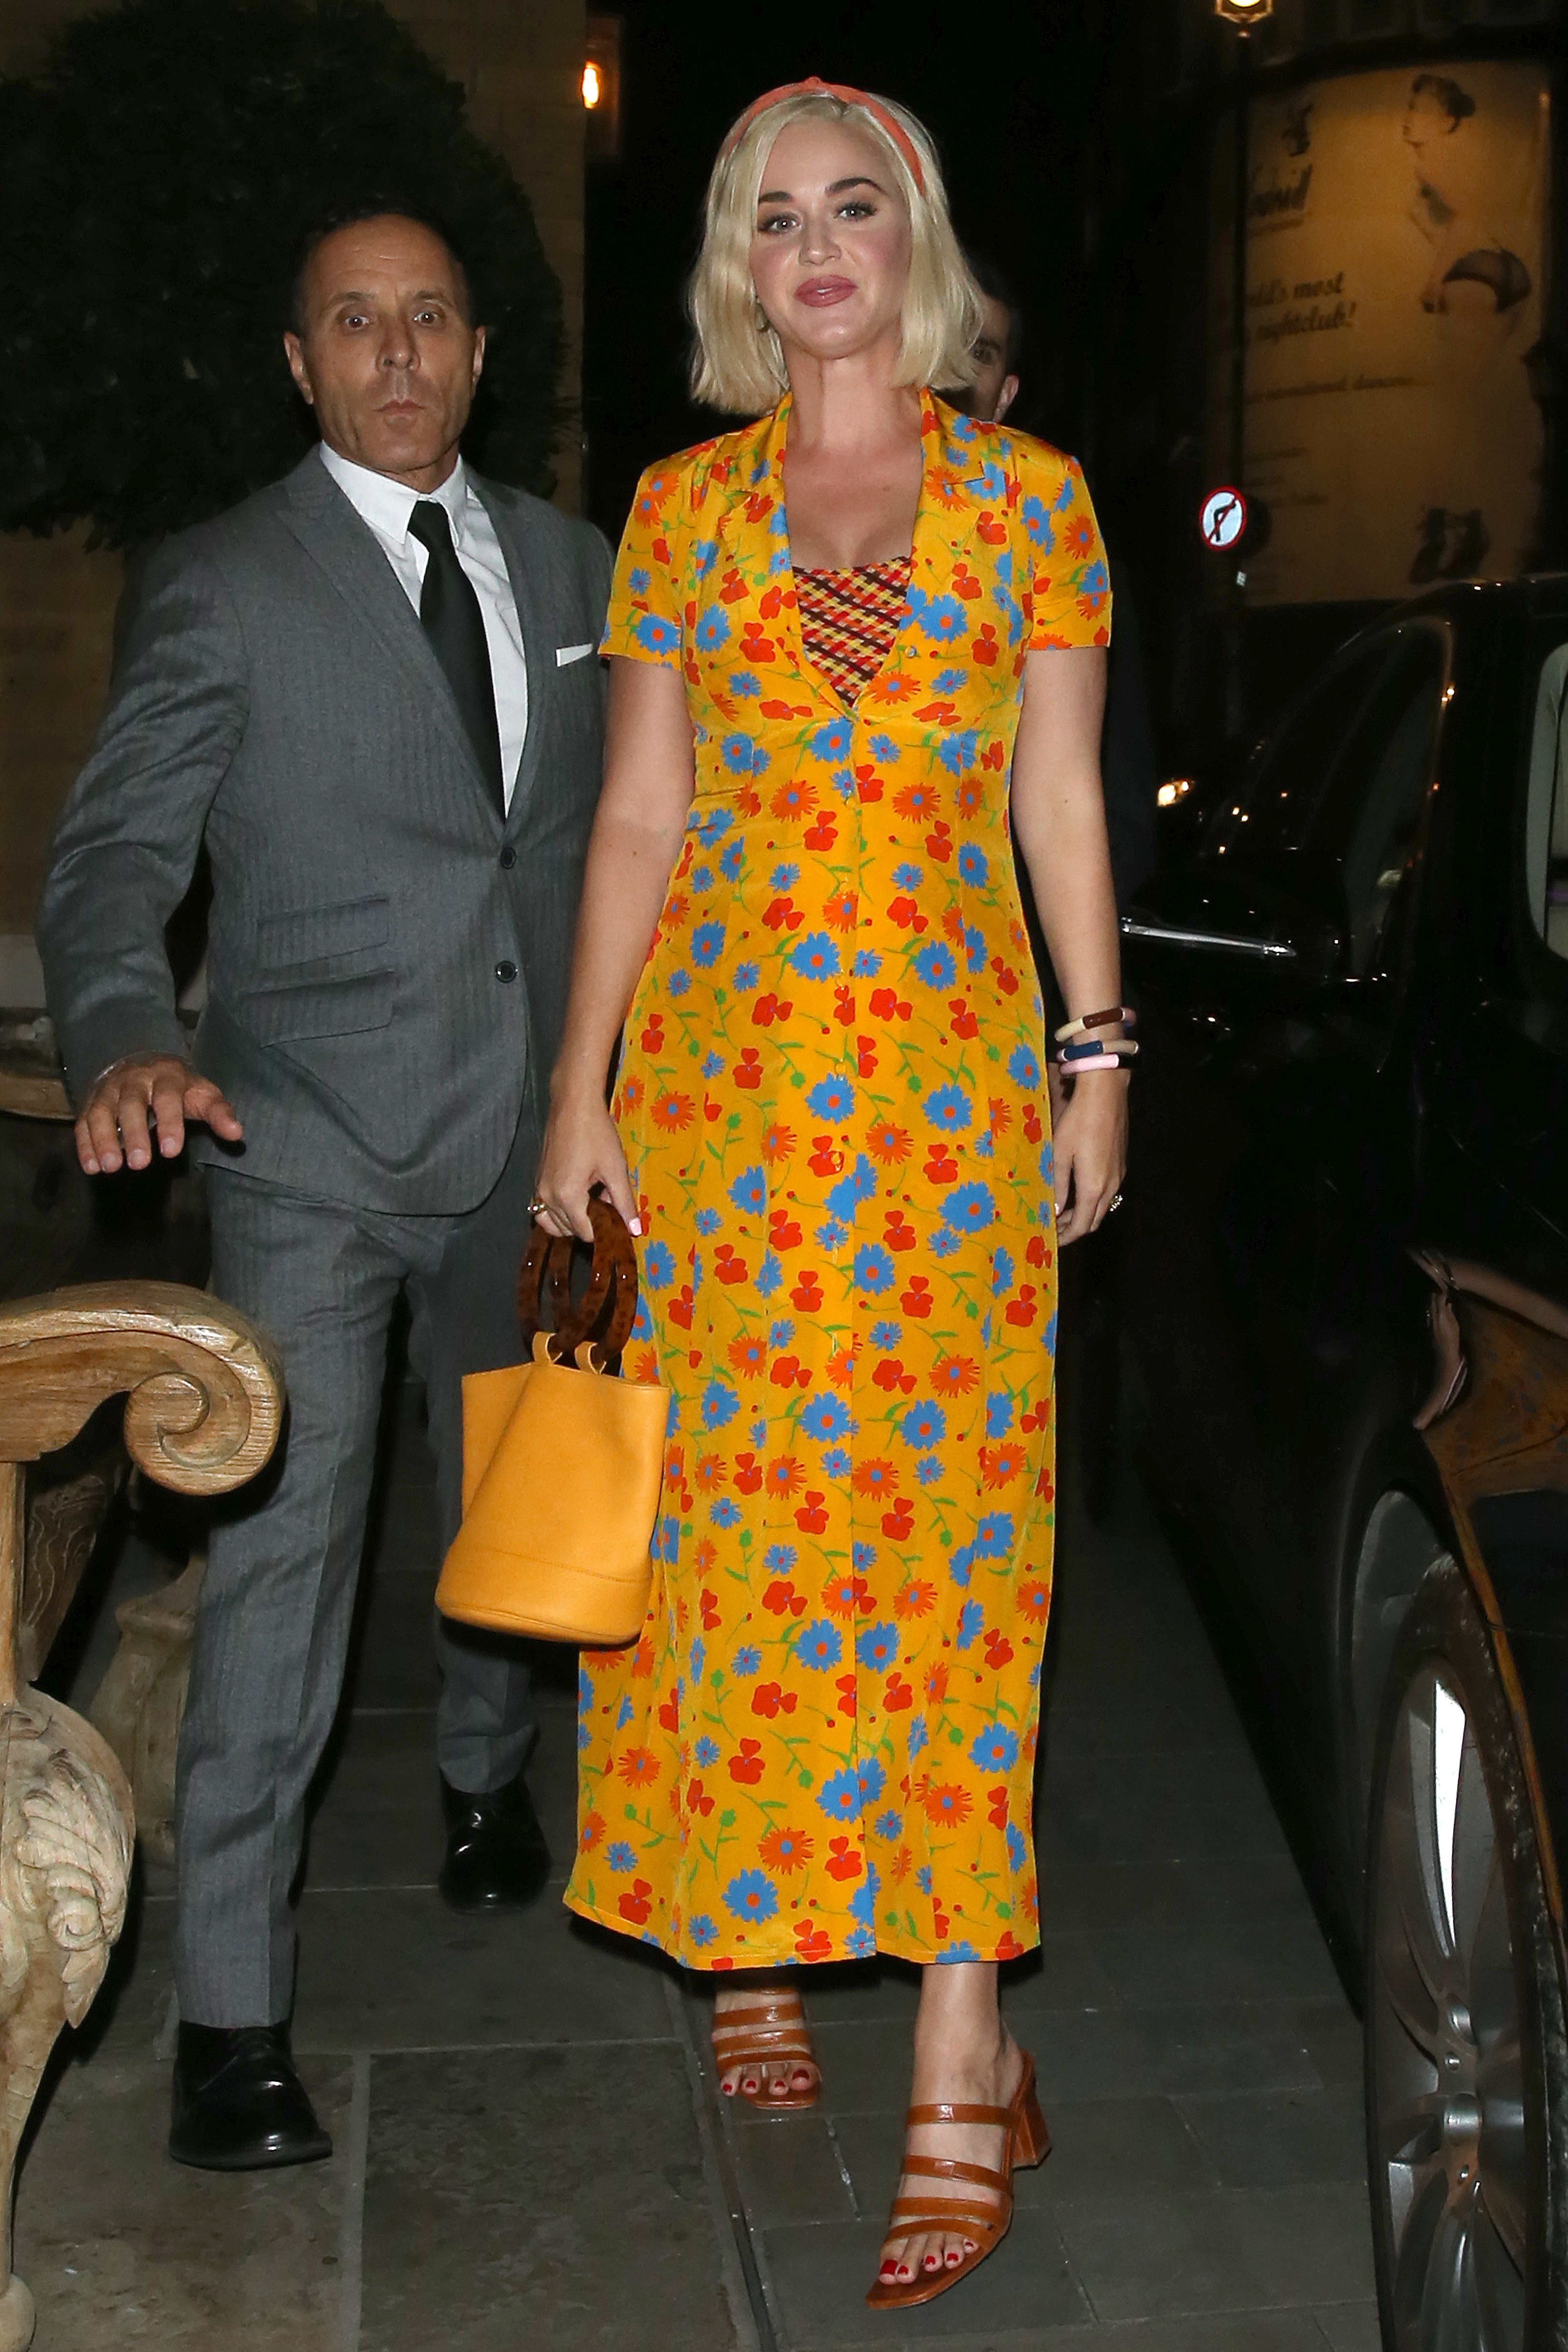 dress floral floral dress katy perry celebrity orange orange dress sandals